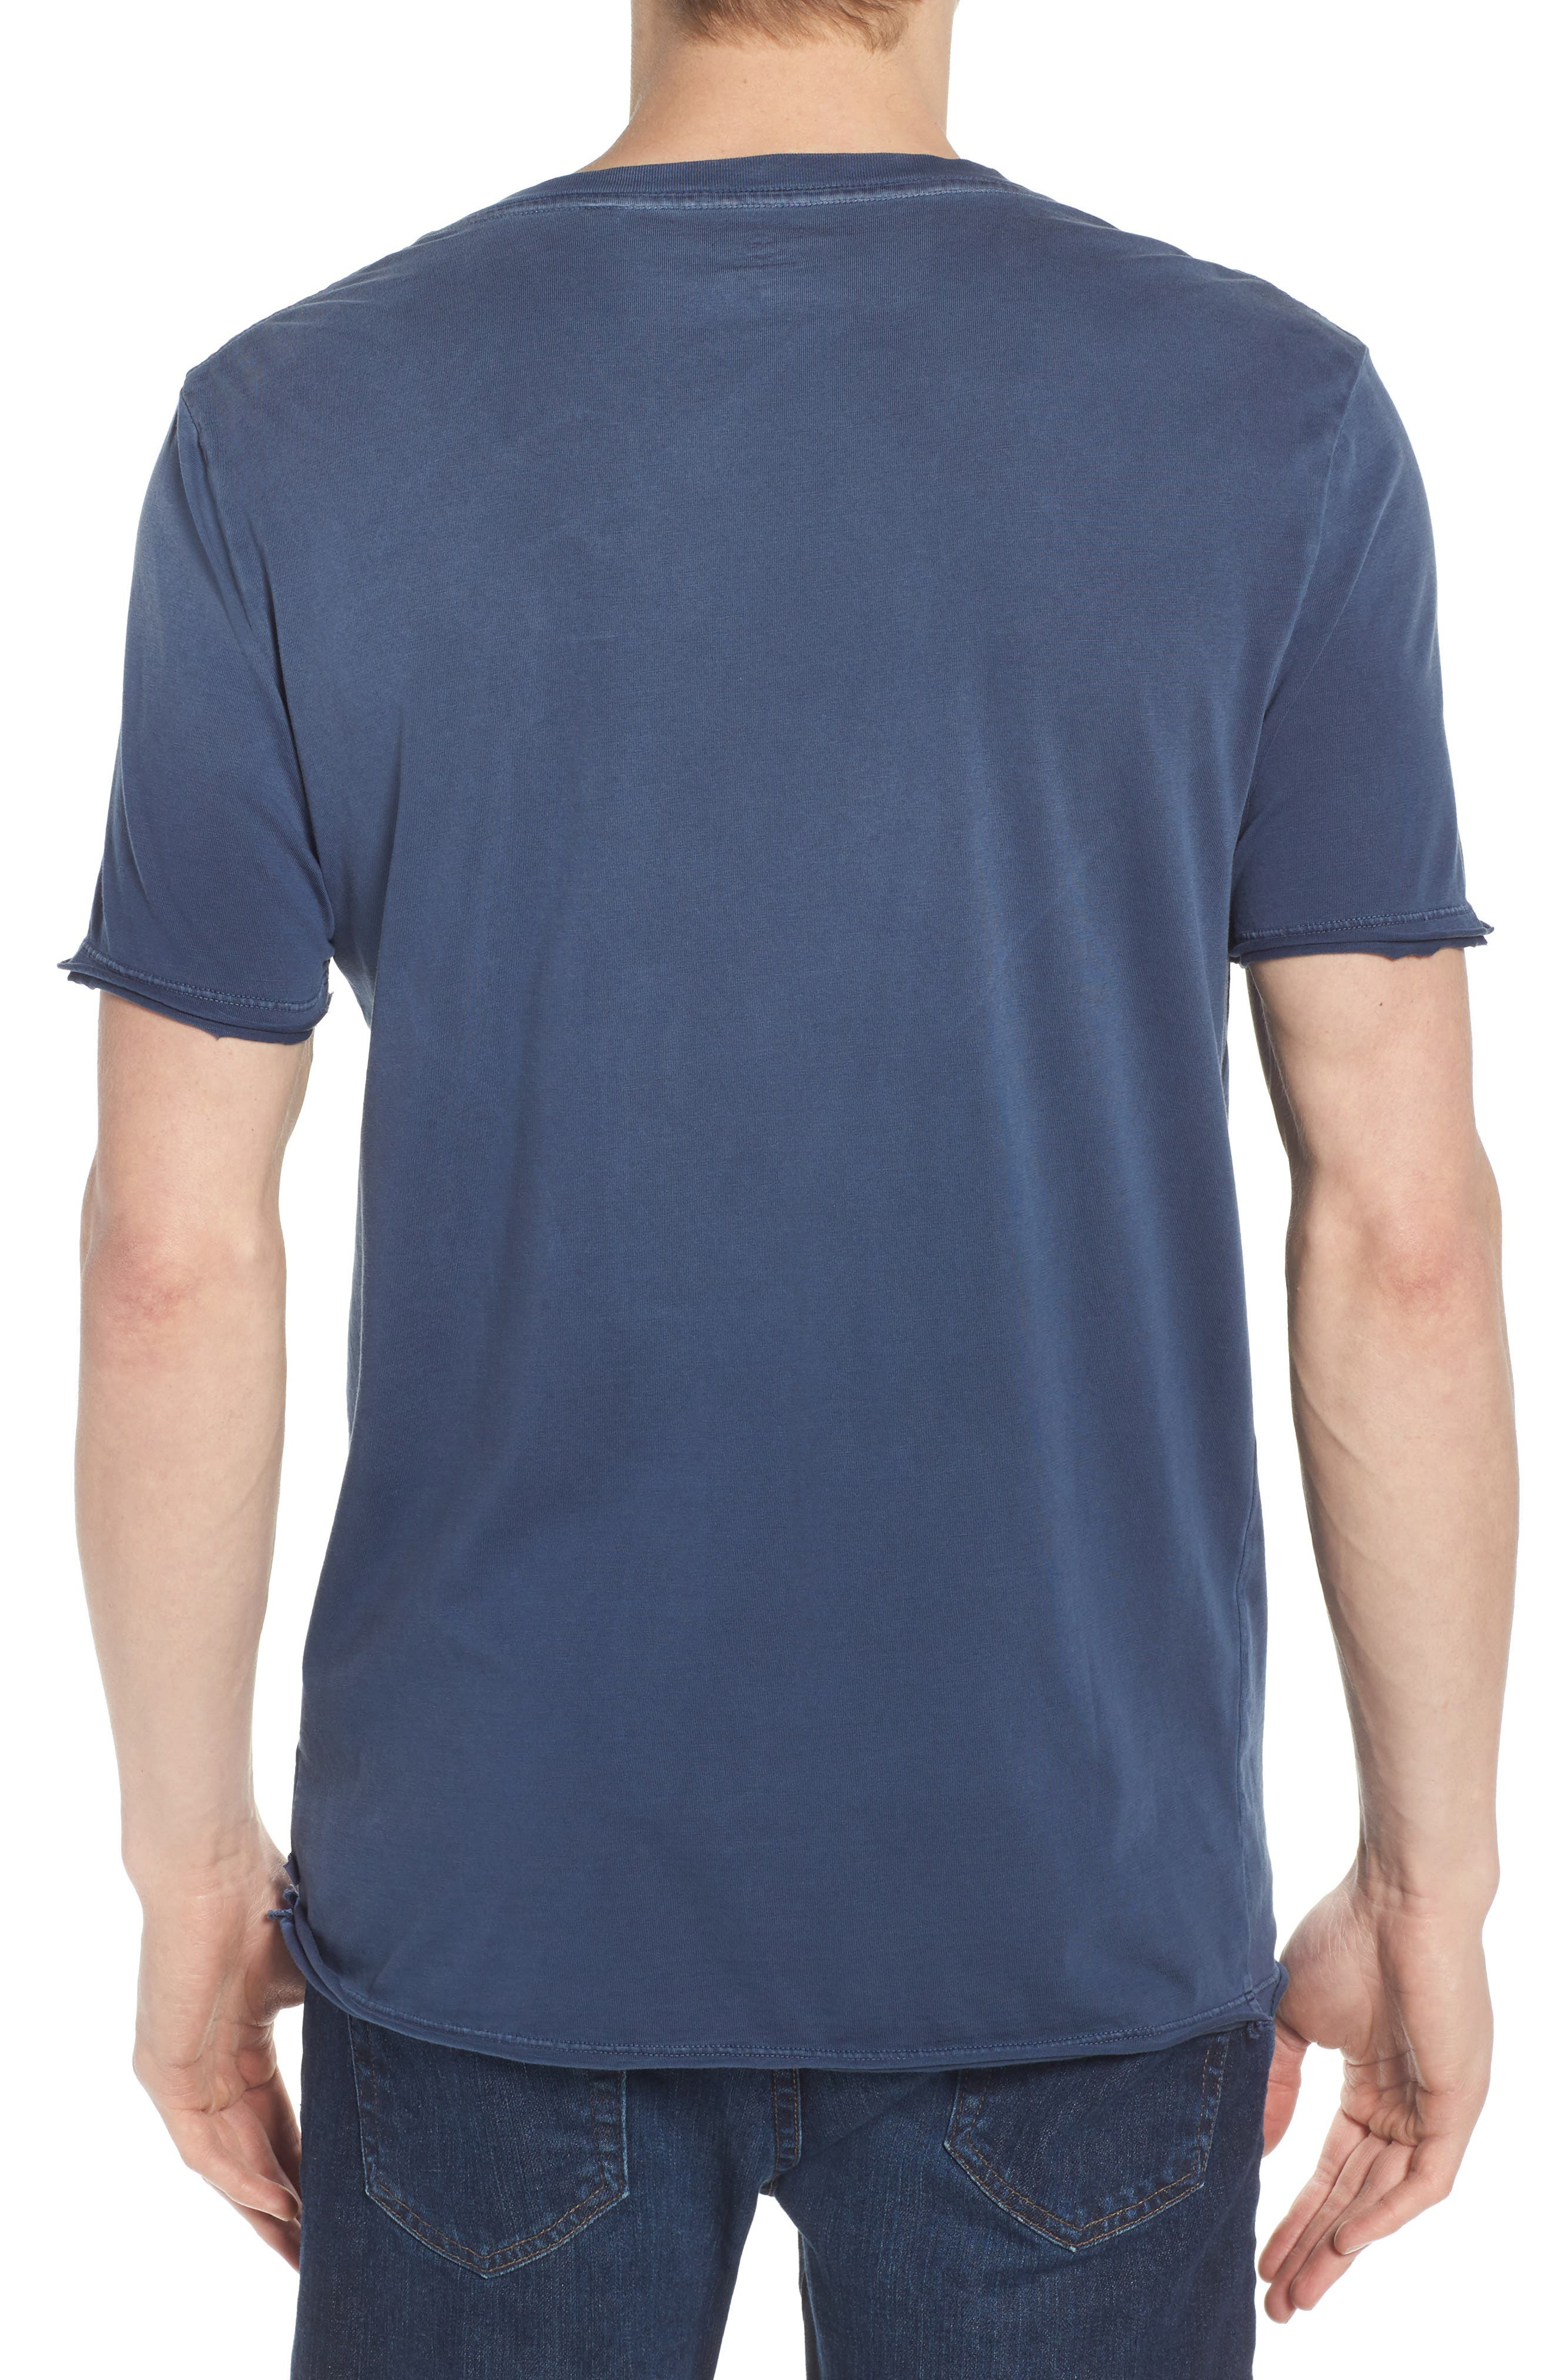 Anders Slim Fit Pocket T-Shirt,                             Alternate thumbnail 2, color,                             Sun Faded Blue Plume